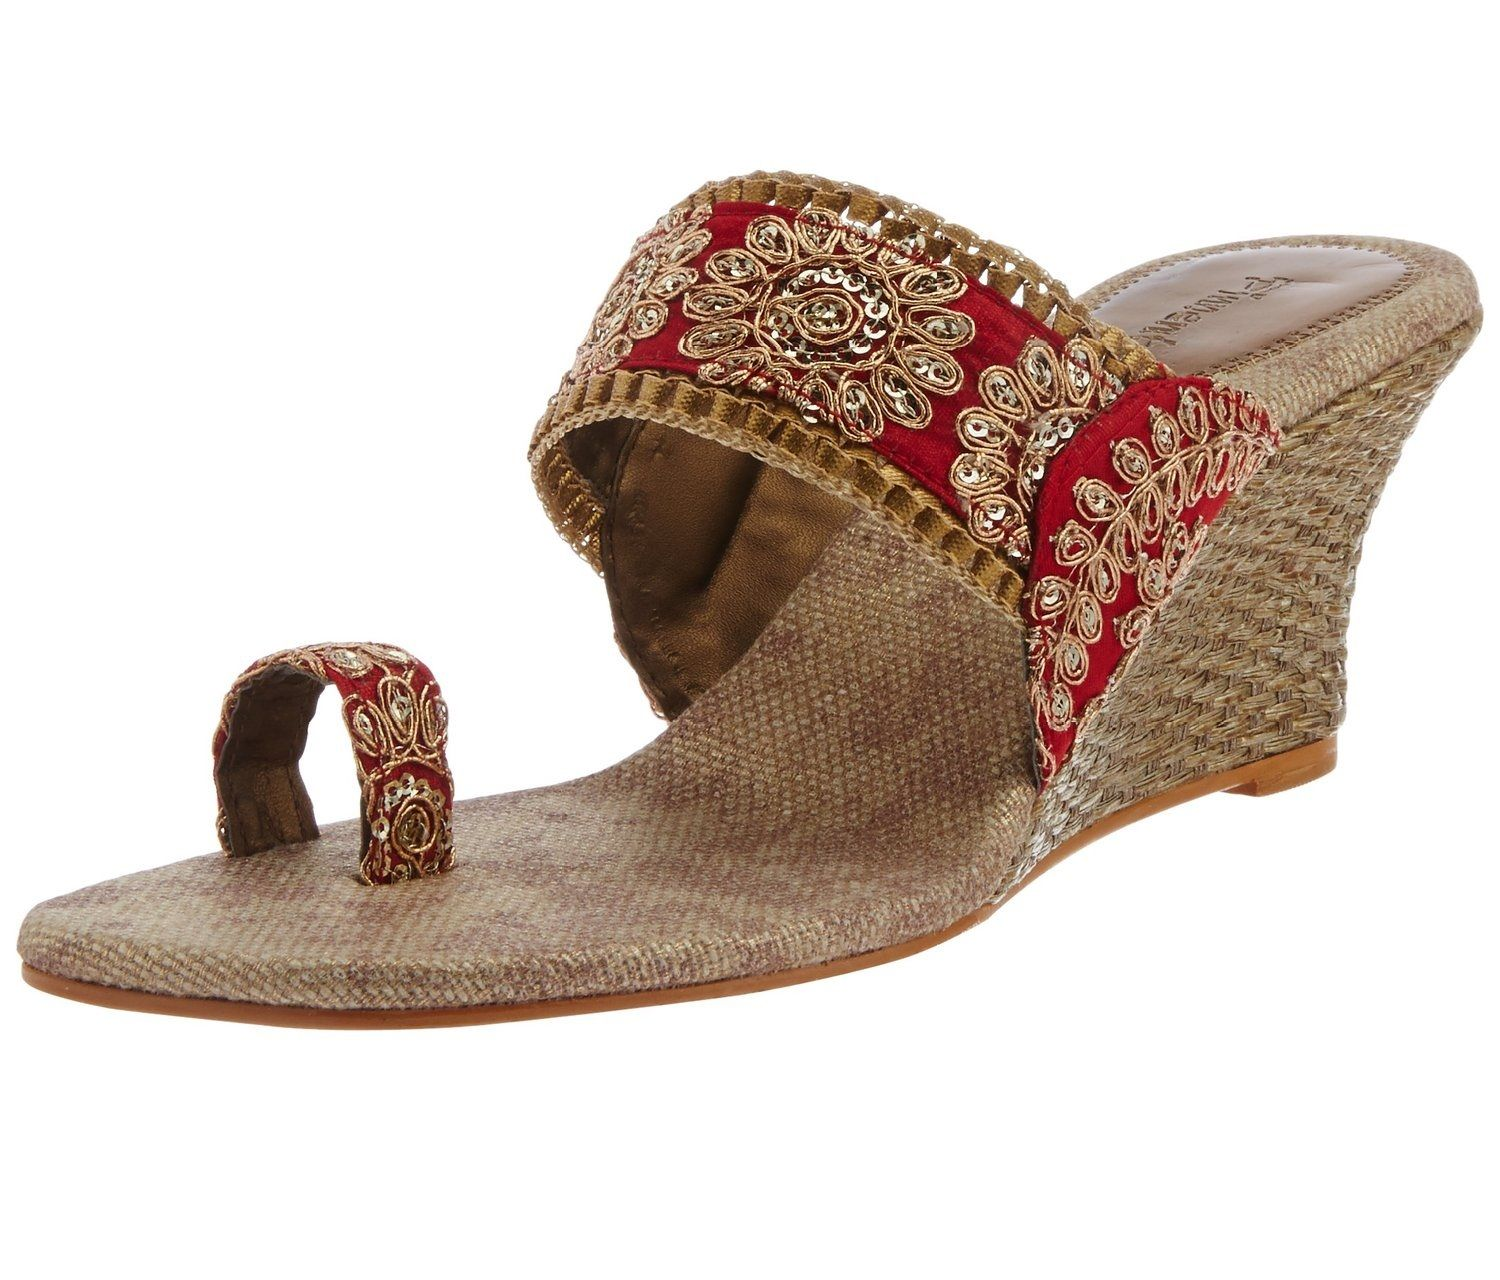 Buy Women Party Wear Bridal Footwear At Rs 710 Lowest Price Online